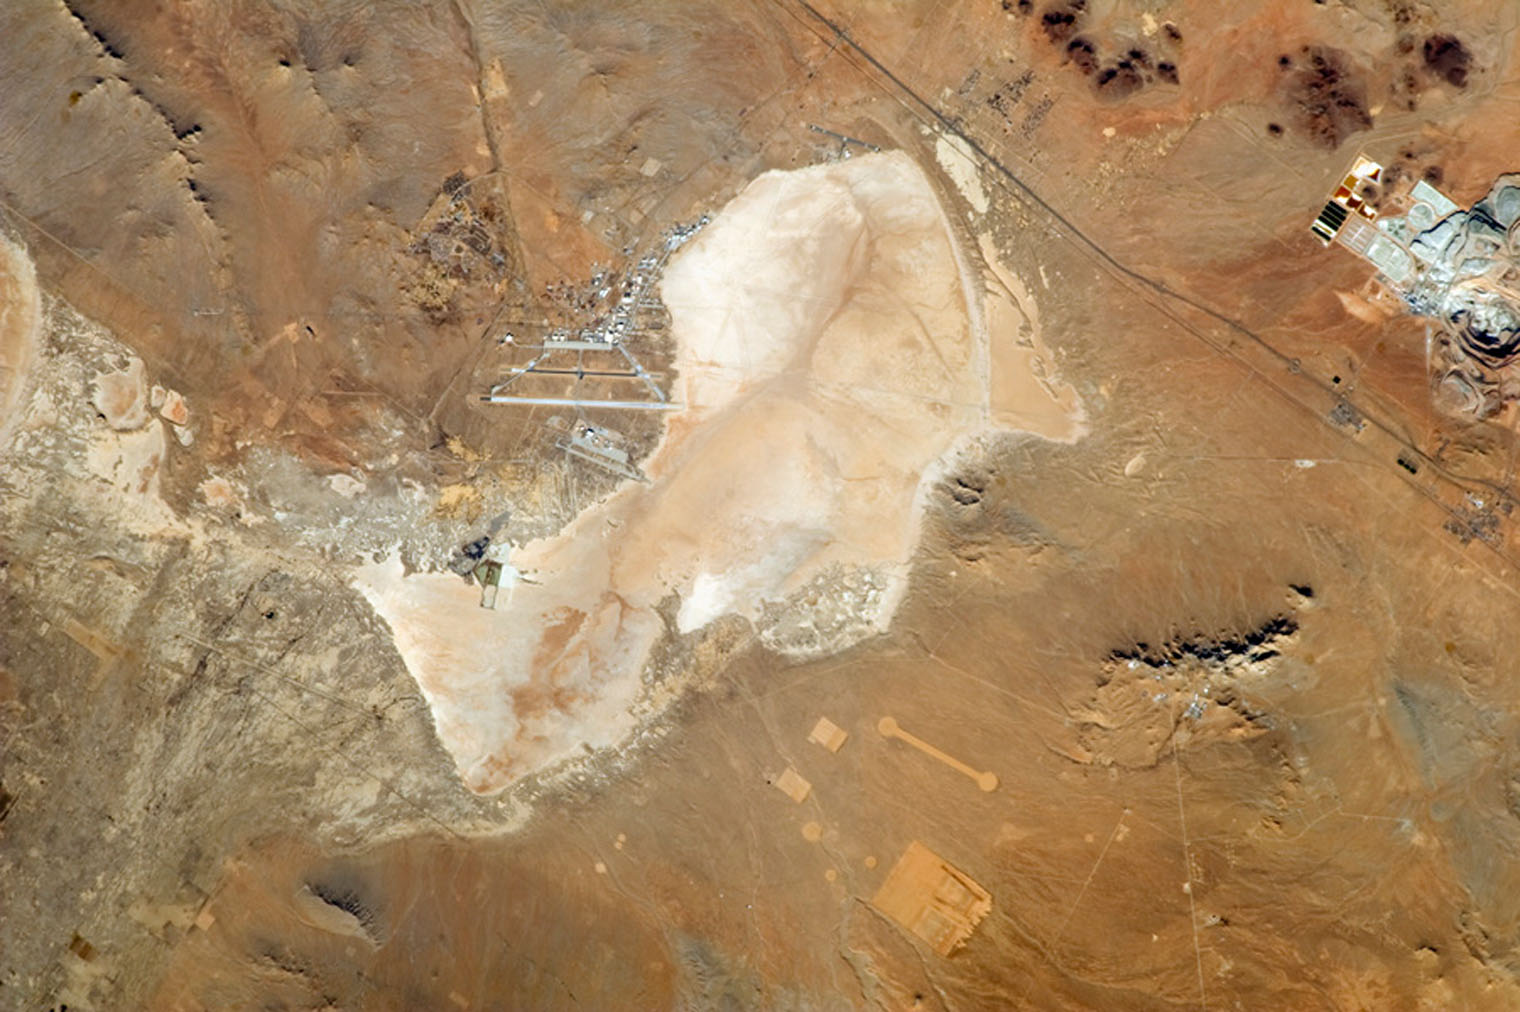 Dry lakebeds, California, USA